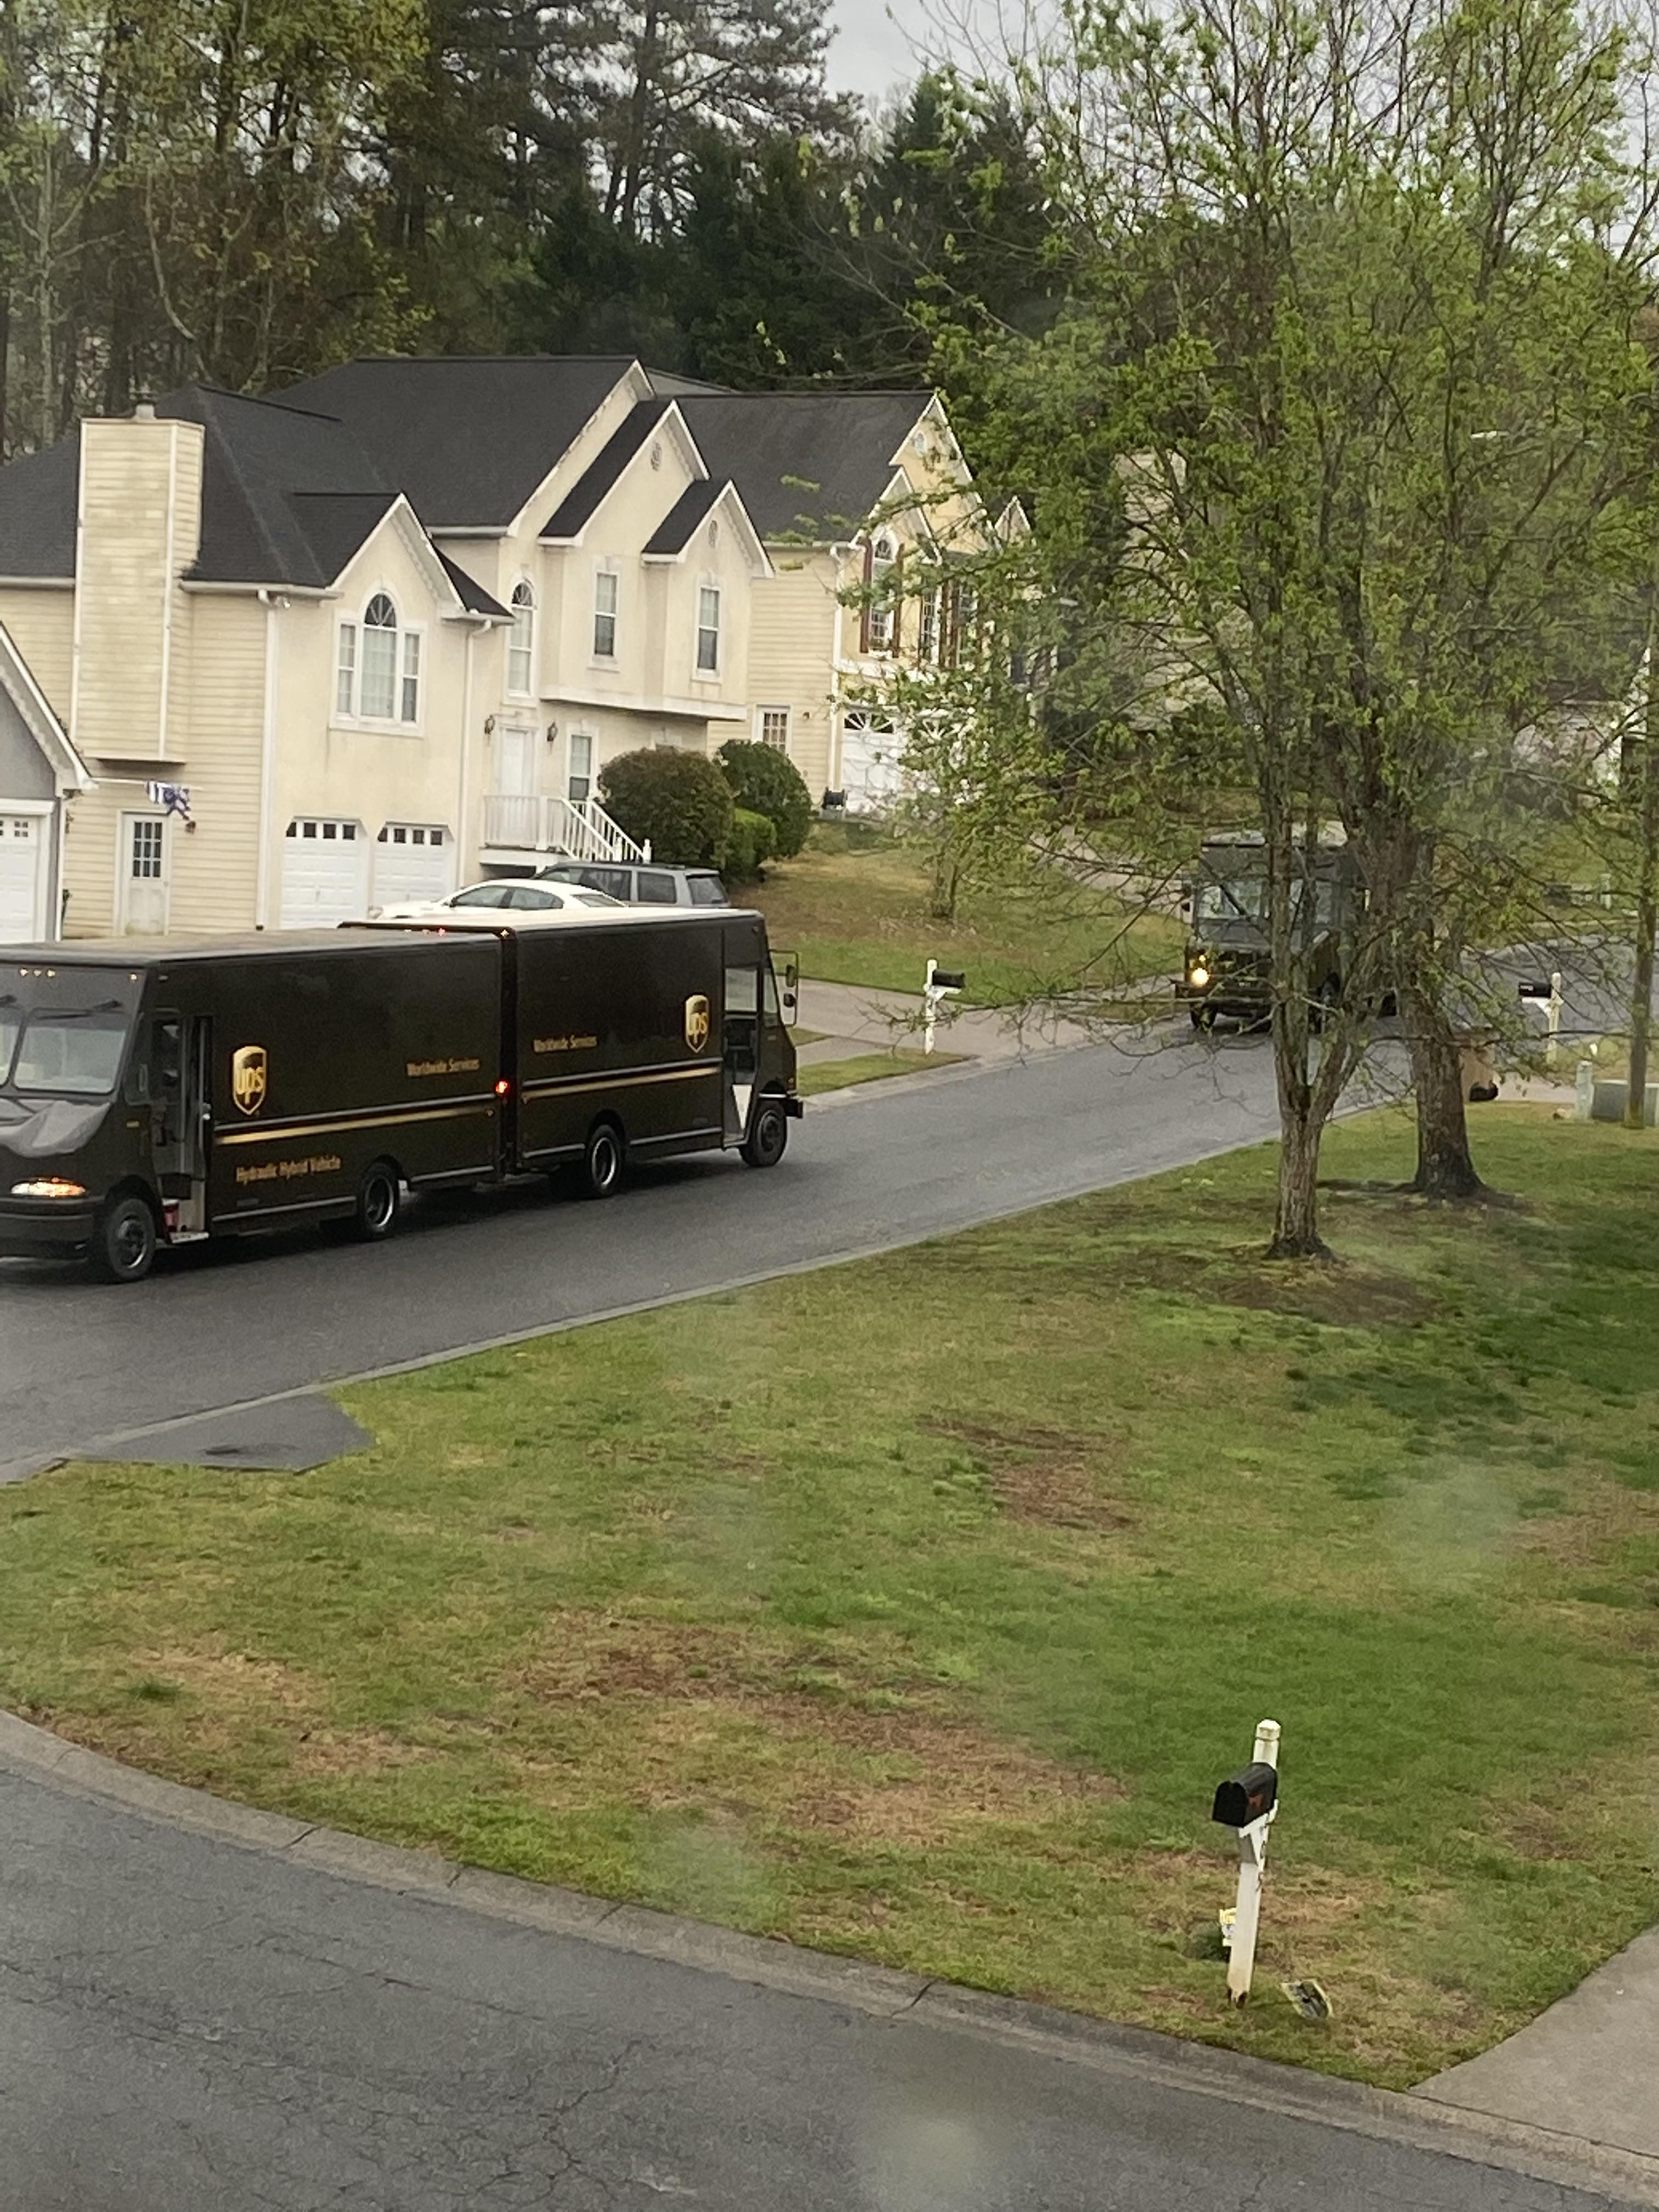 Spring is in the air! Behold the rarely photographed mating ritual of the big brown truck.